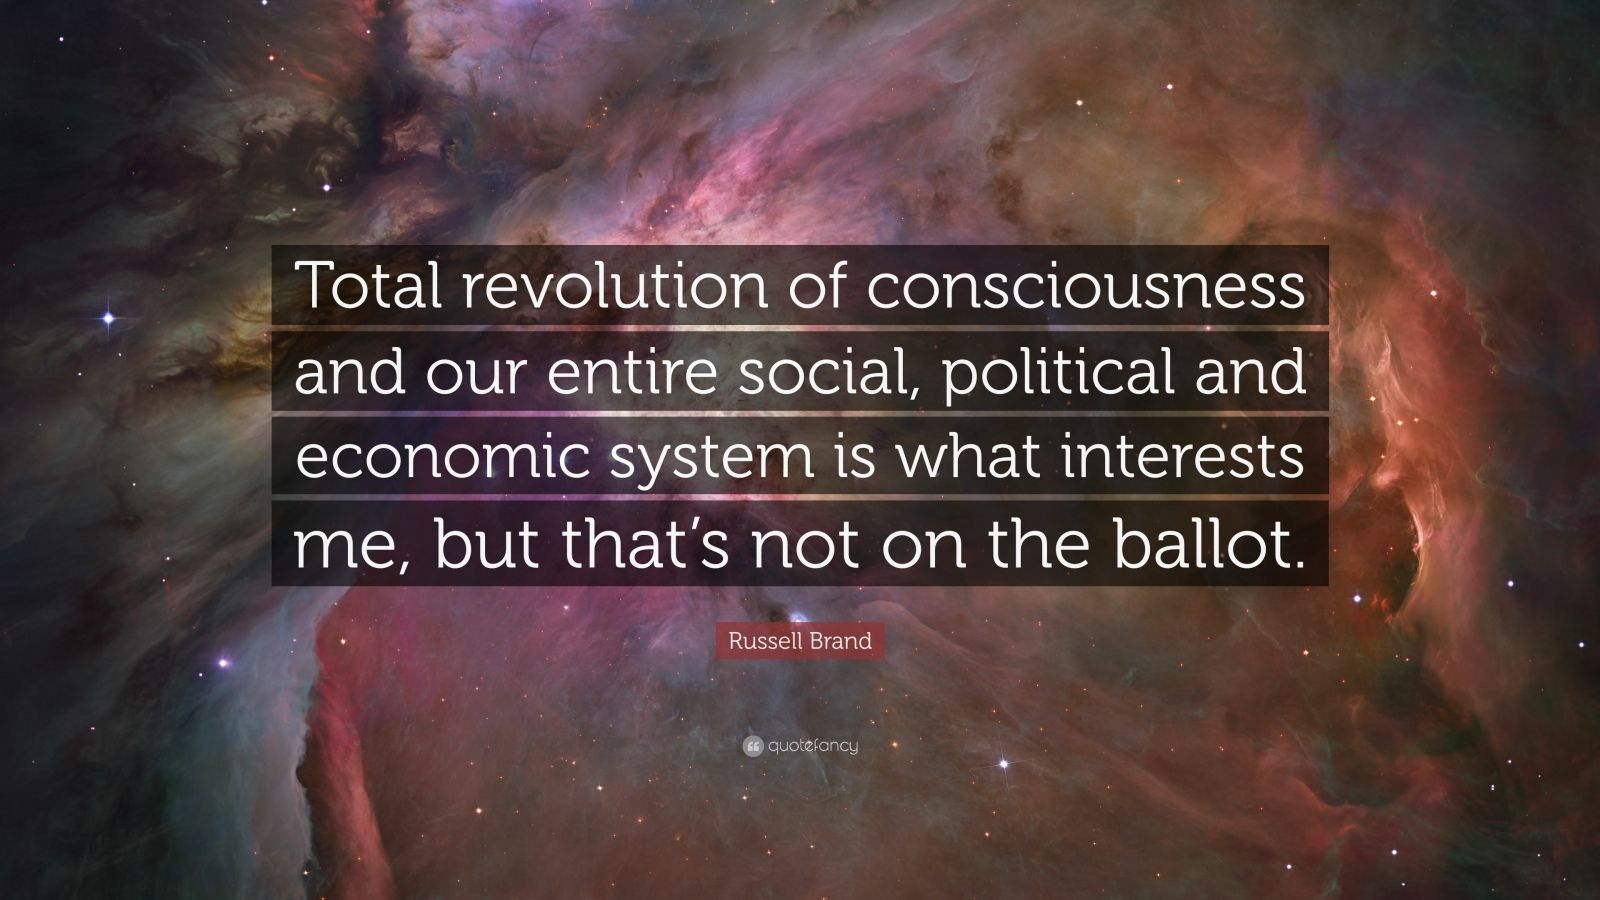 """Russell Brand Quote: """"Total revolution of consciousness and our entire social, political and economic system is what interests me, but that's not on the ballot."""""""